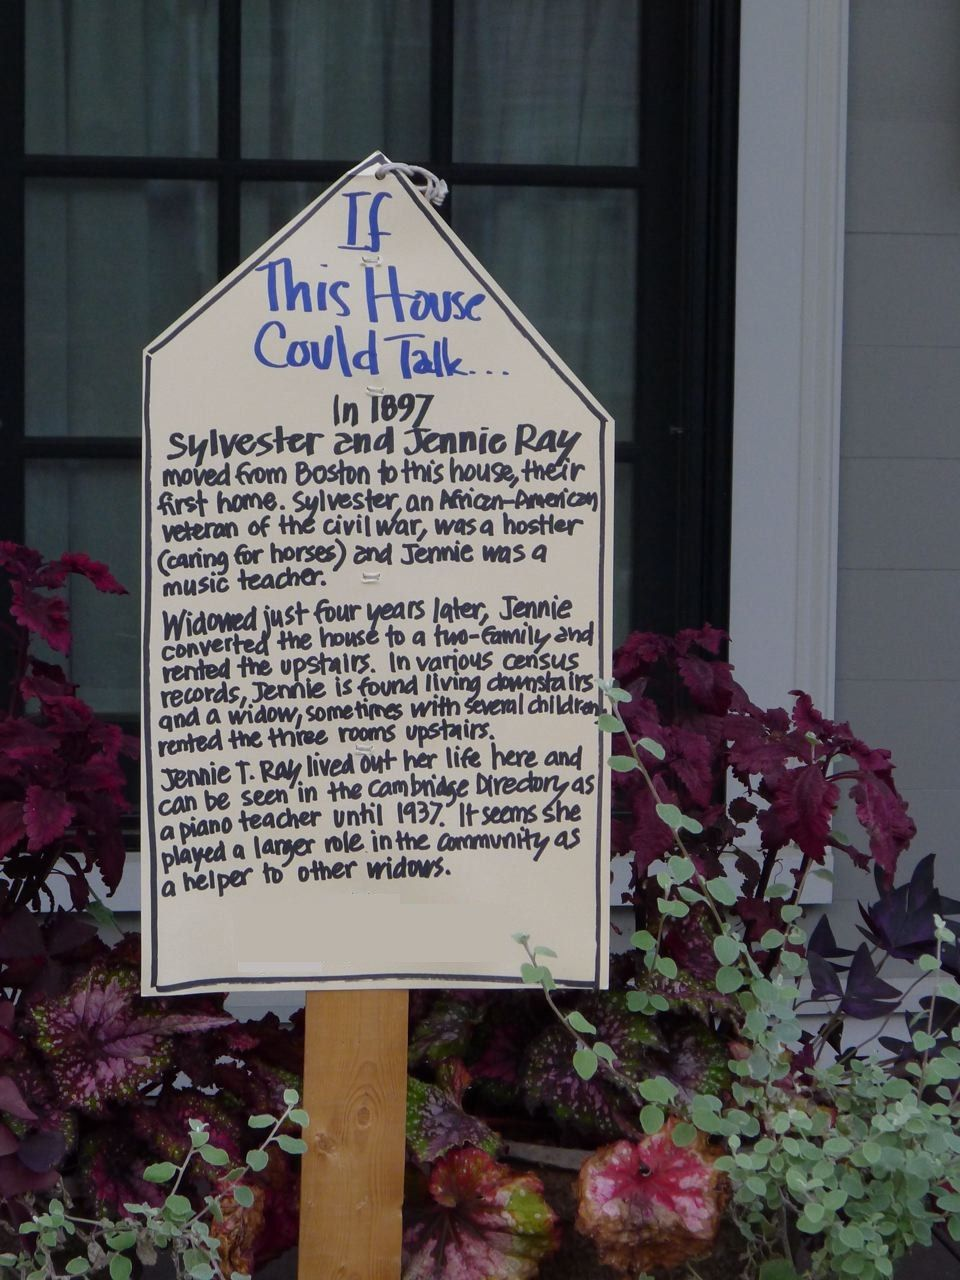 An Urban Cottage: If This House Could Talk - being the crazy history buff that I am...I LOVE this idea!